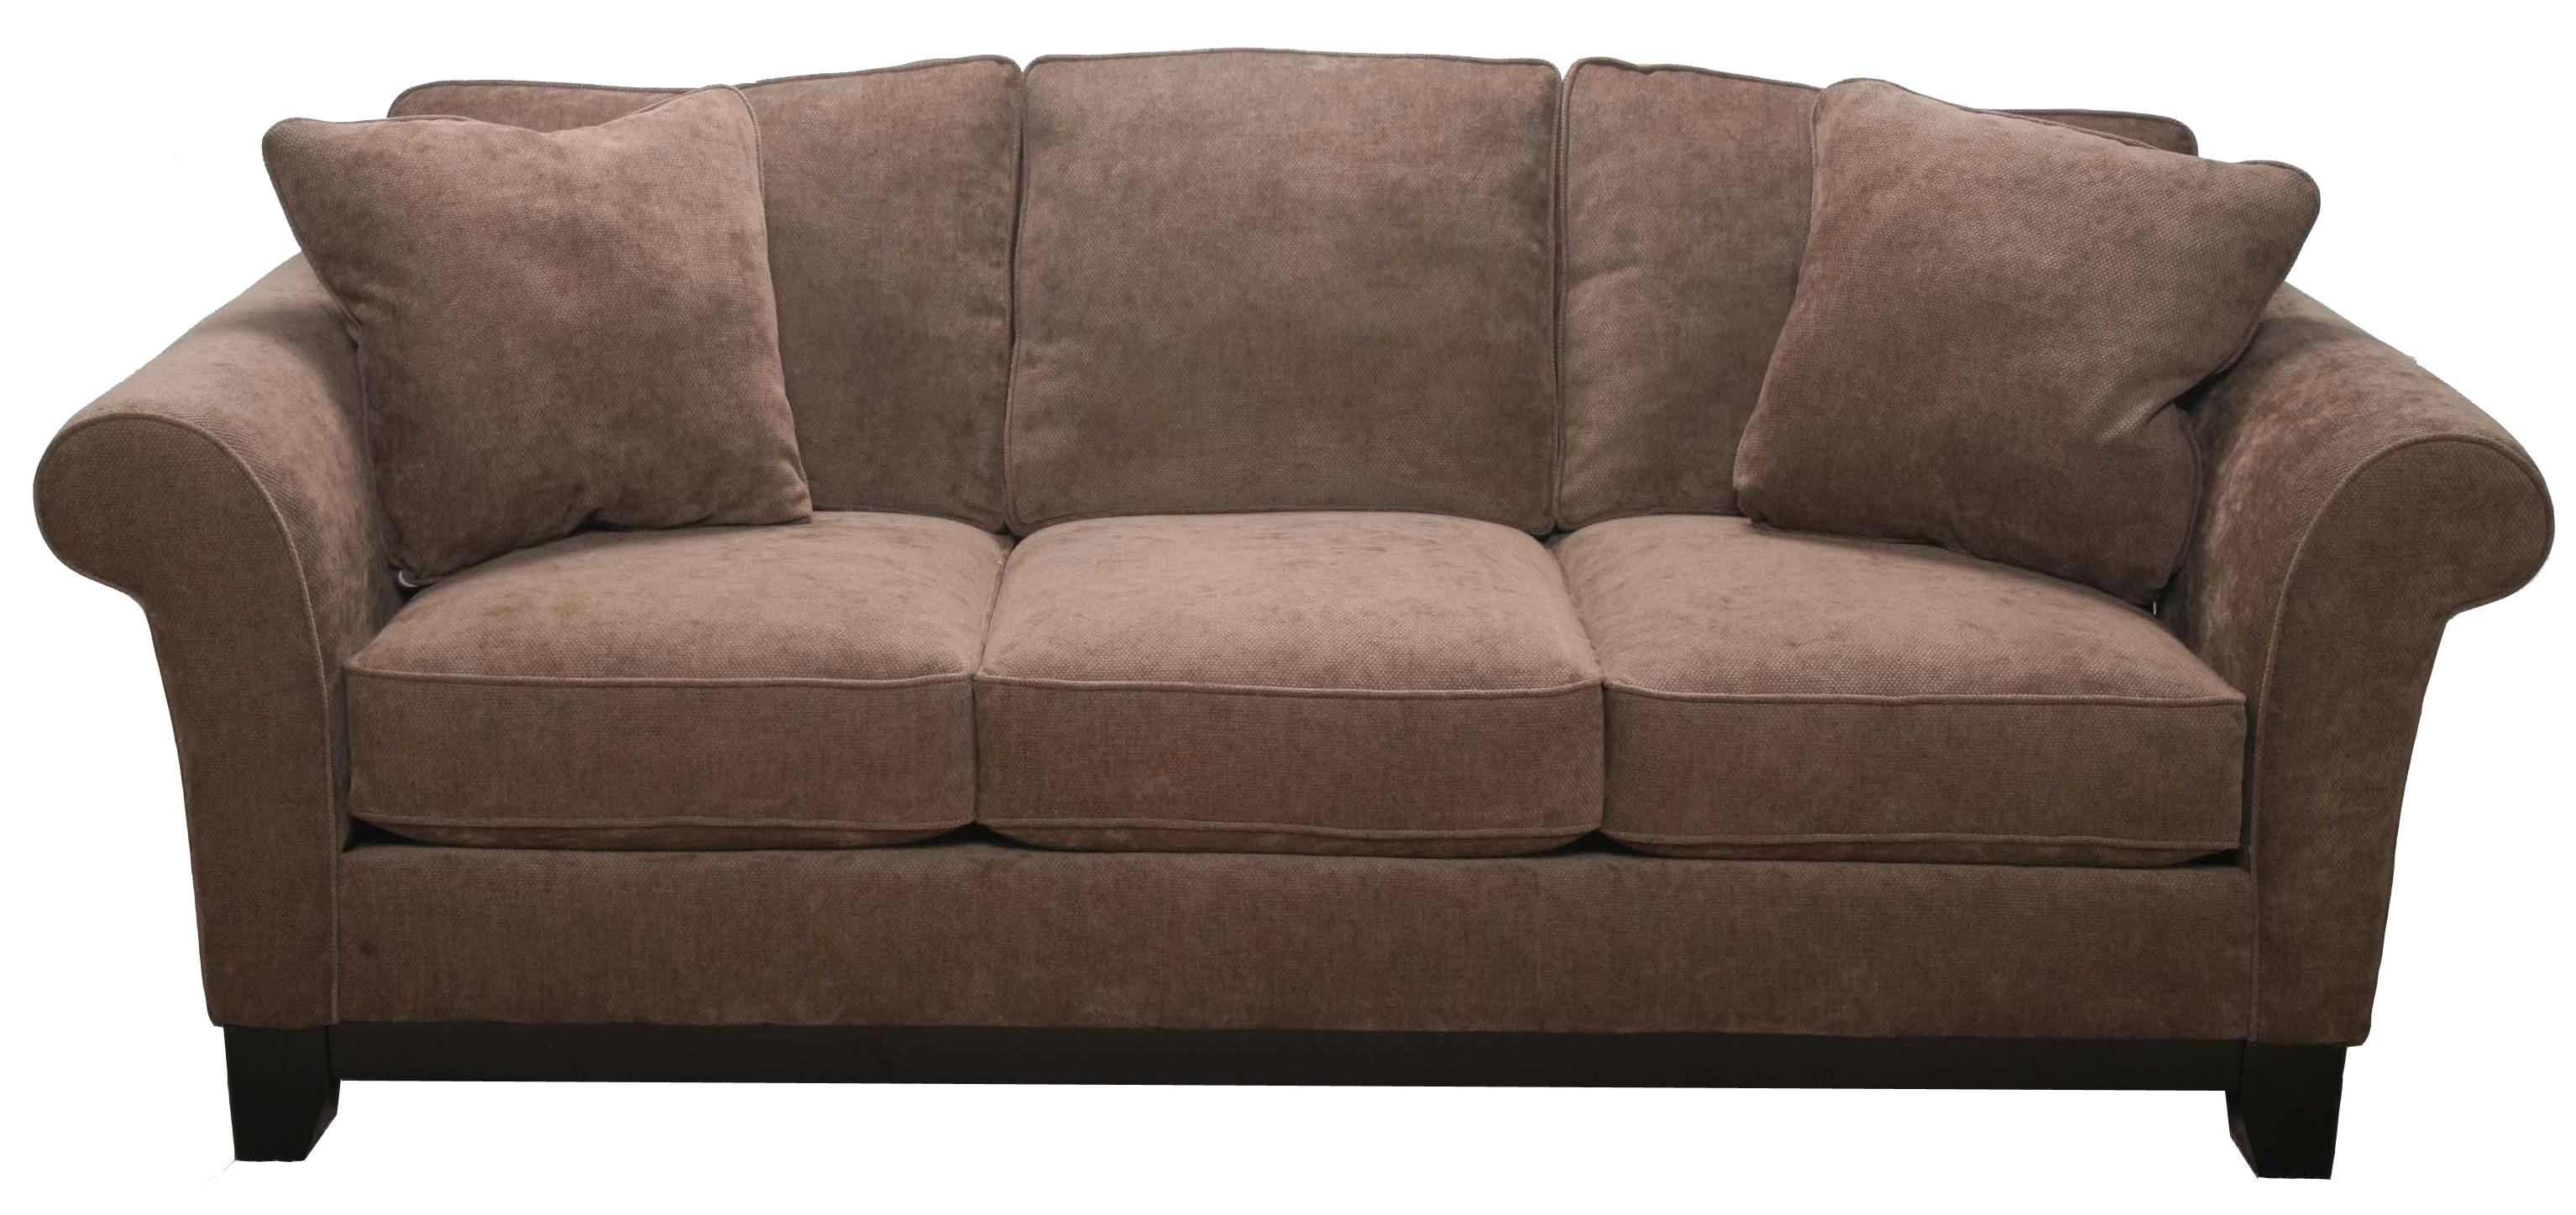 Bauhaus 33SMA Transitional Sofa with Exposed Wood Base AHFA